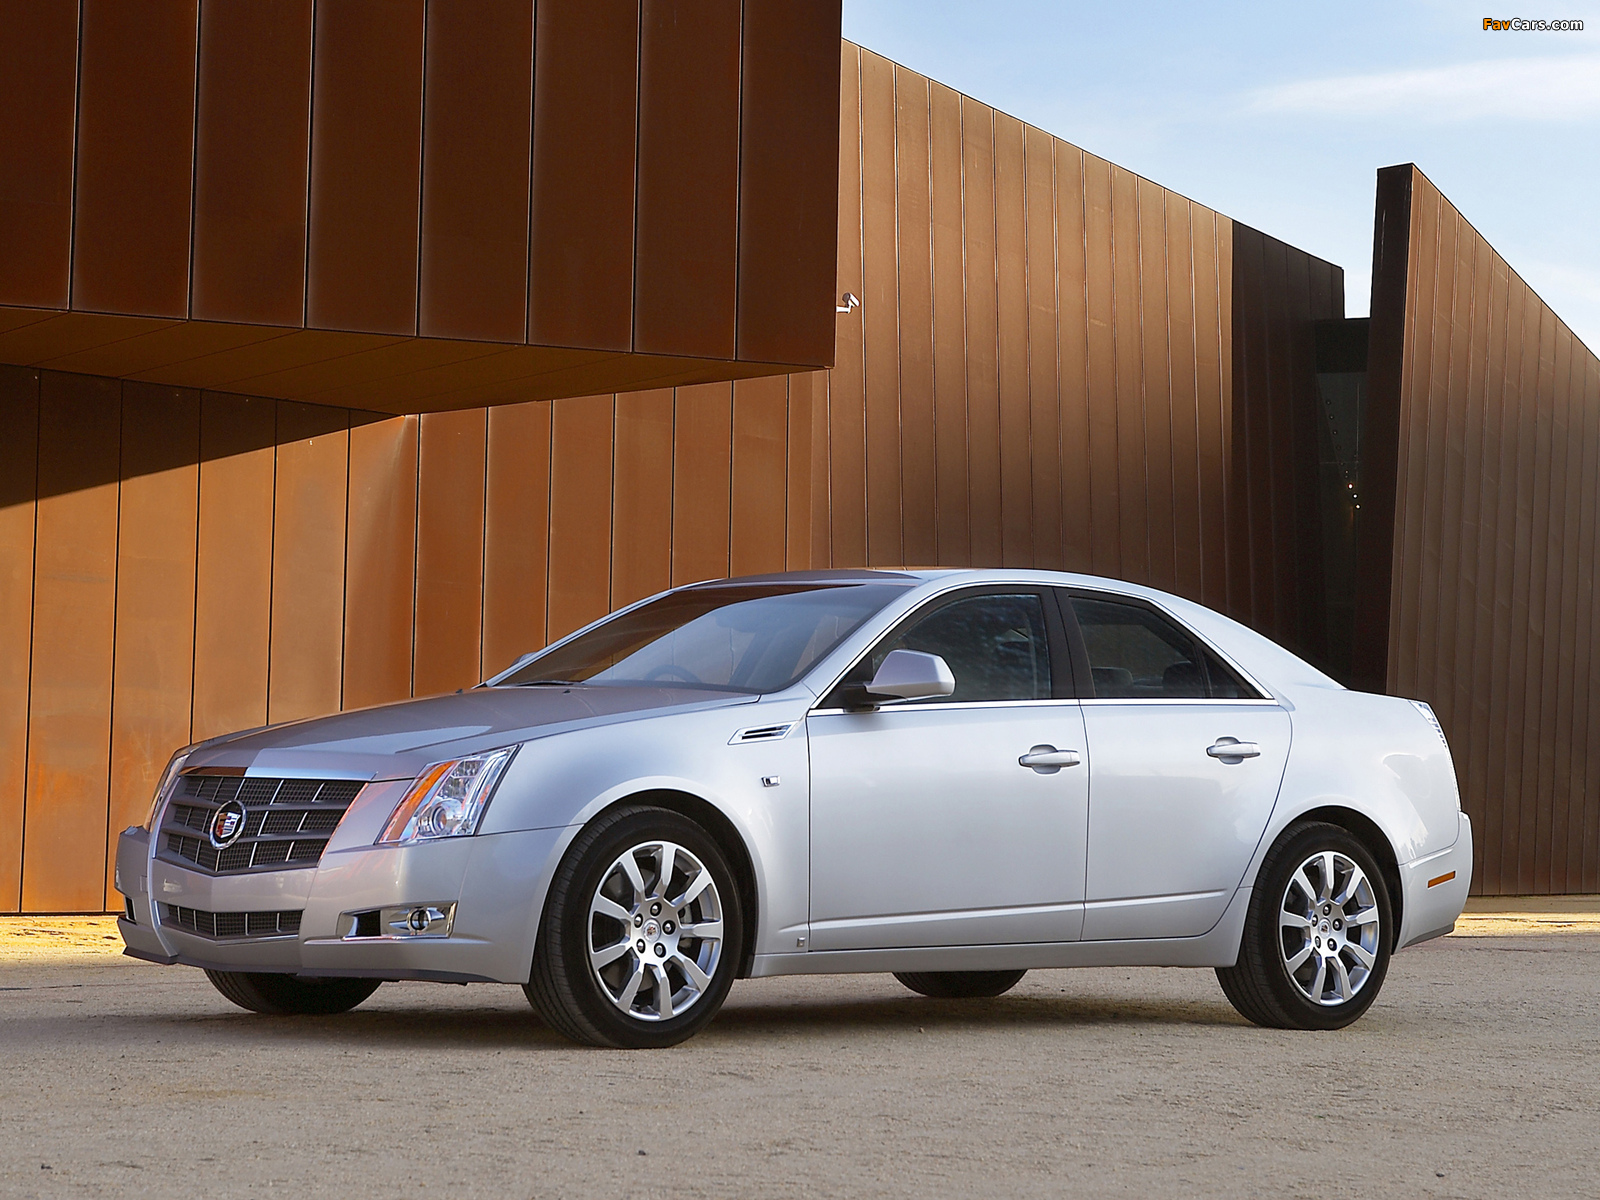 Cadillac CTS UK-spec 2008 images (1600 x 1200)